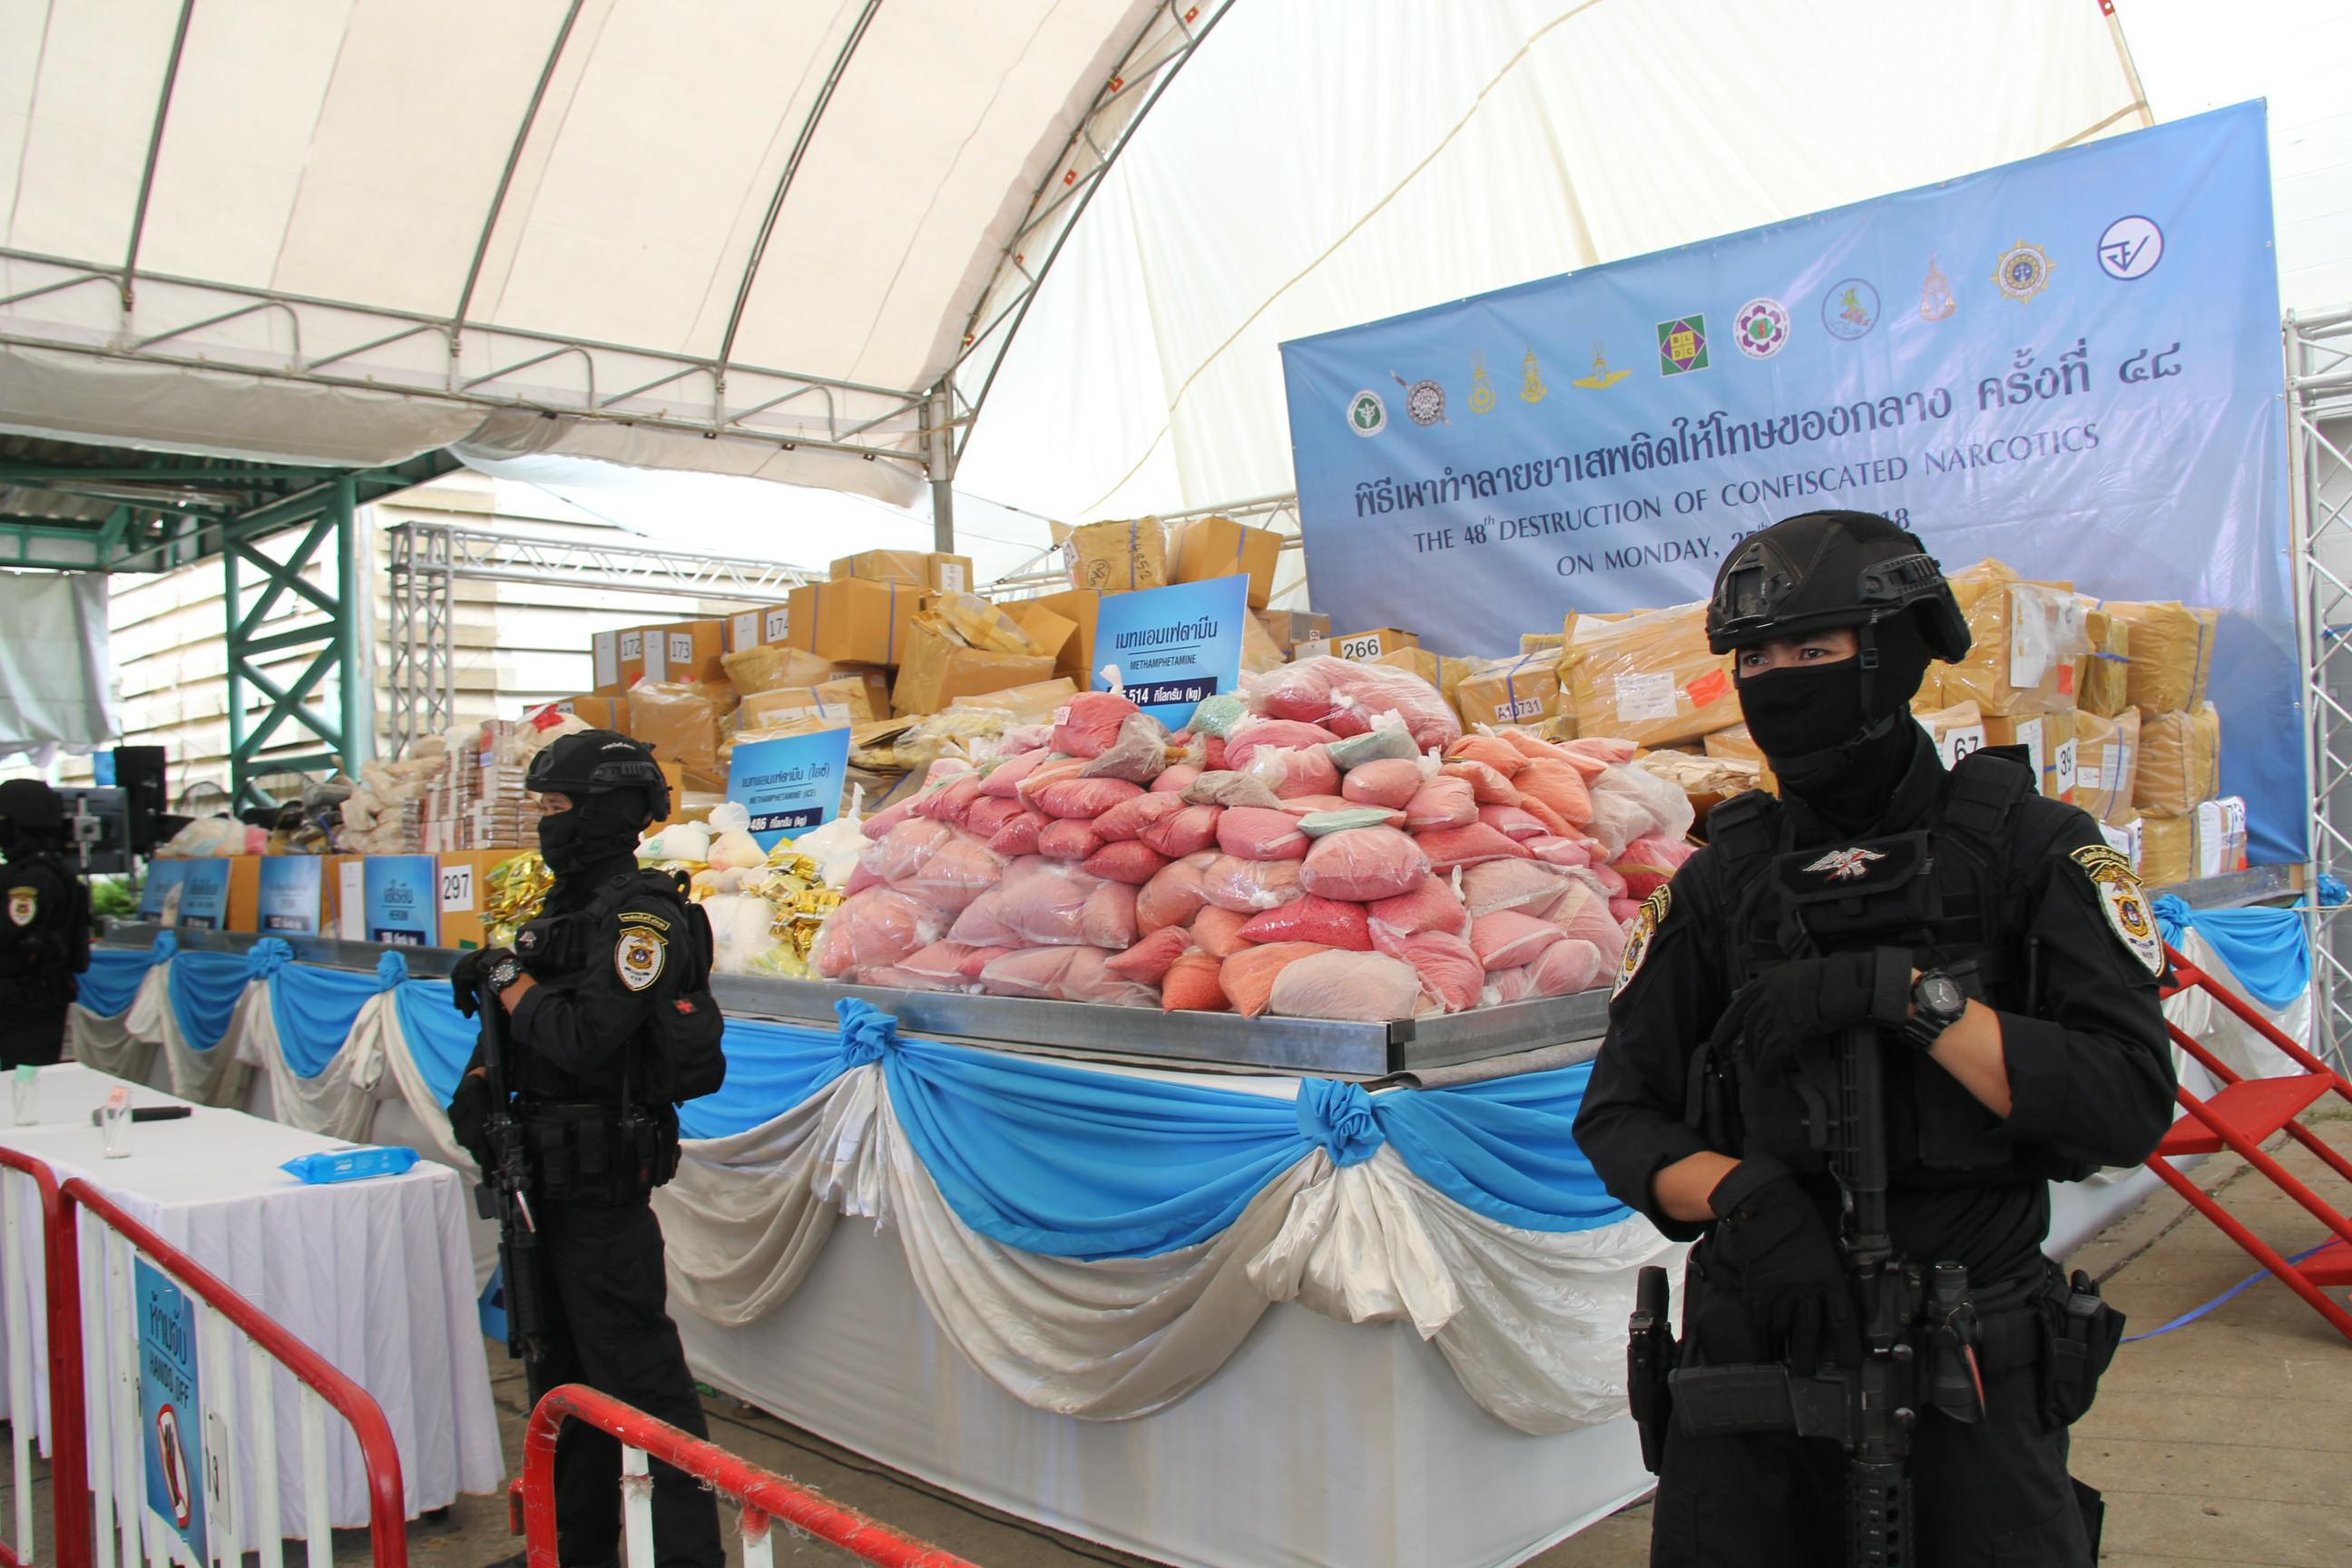 Thailand to burn 15,000kg of seized drugs